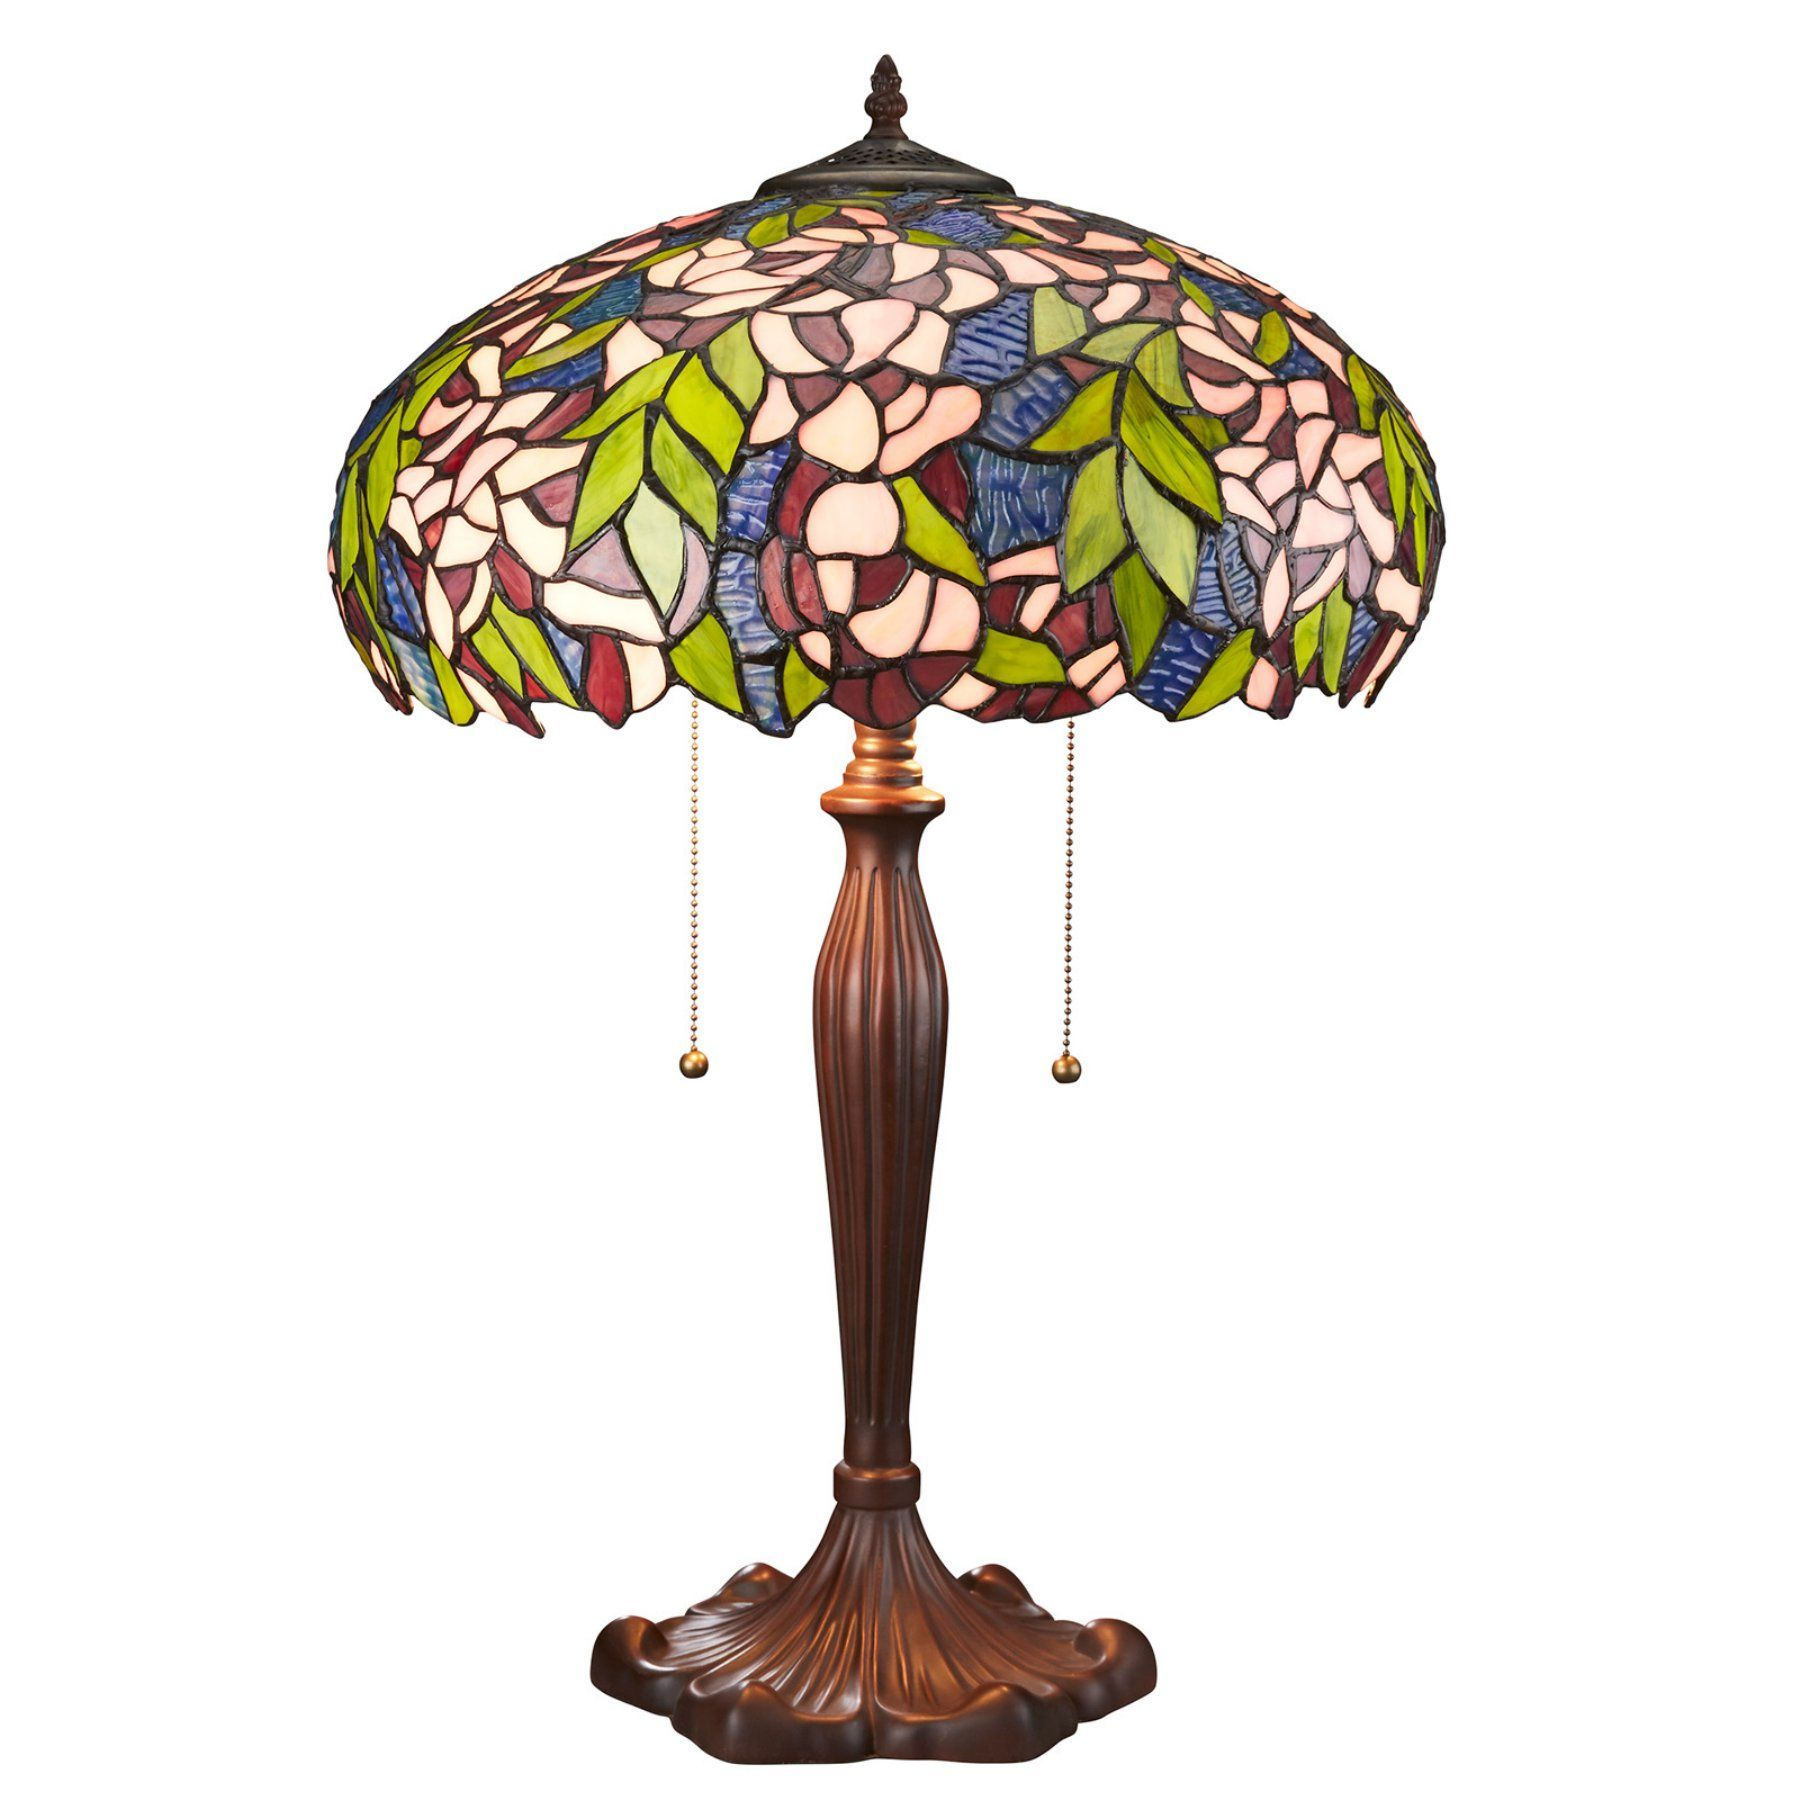 Design Toscano Art Nouveau Wisteria Tiffany-Style Stained Glass Lamp - TF85004